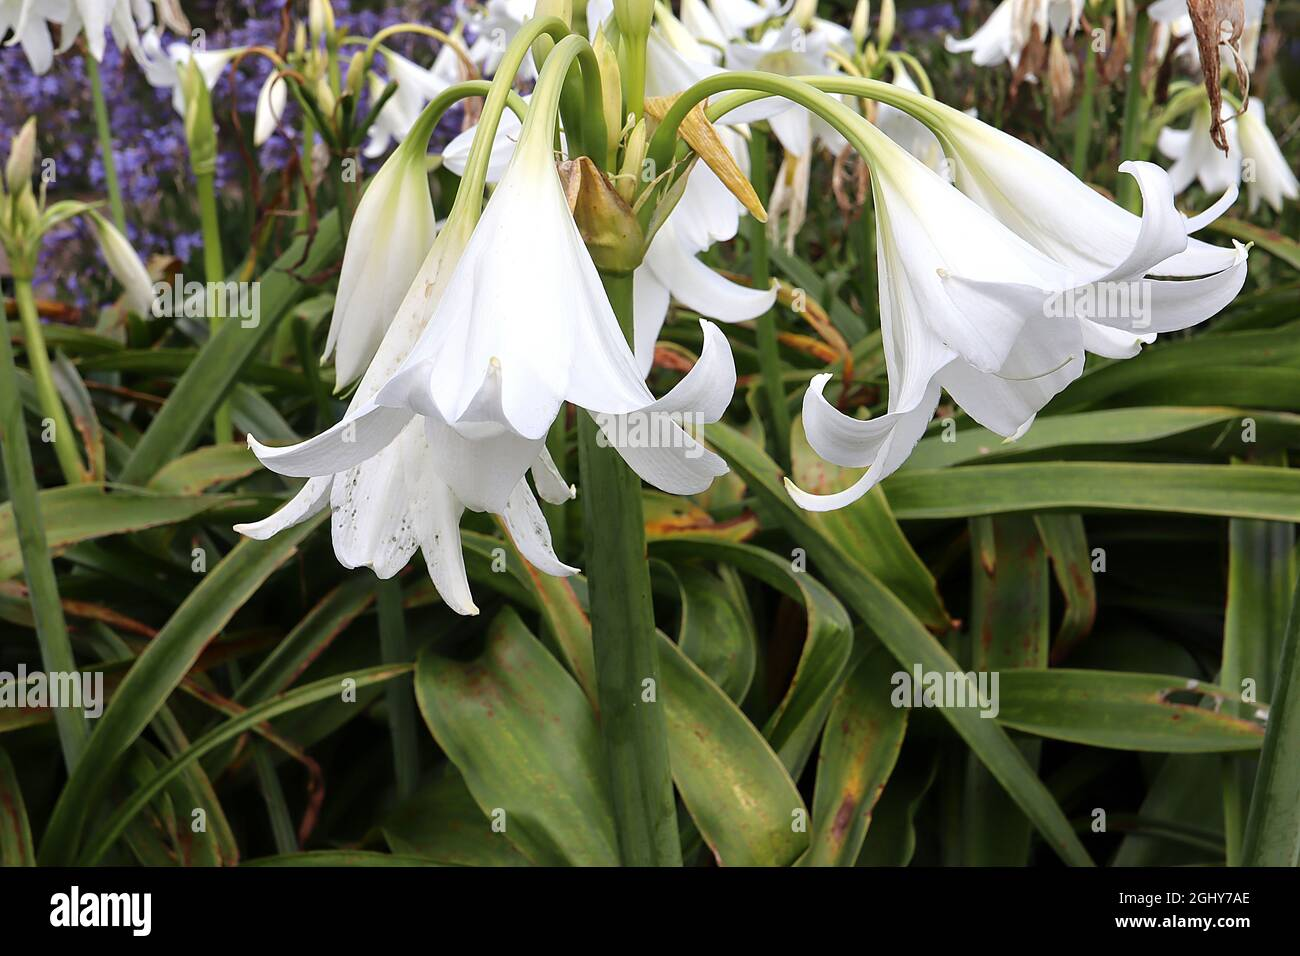 Crinum x powellii 'Album' swamp lily Album – scented large white funnel-shaped flowers and grey green strap-shaped leaves,  August, England, UK Stock Photo